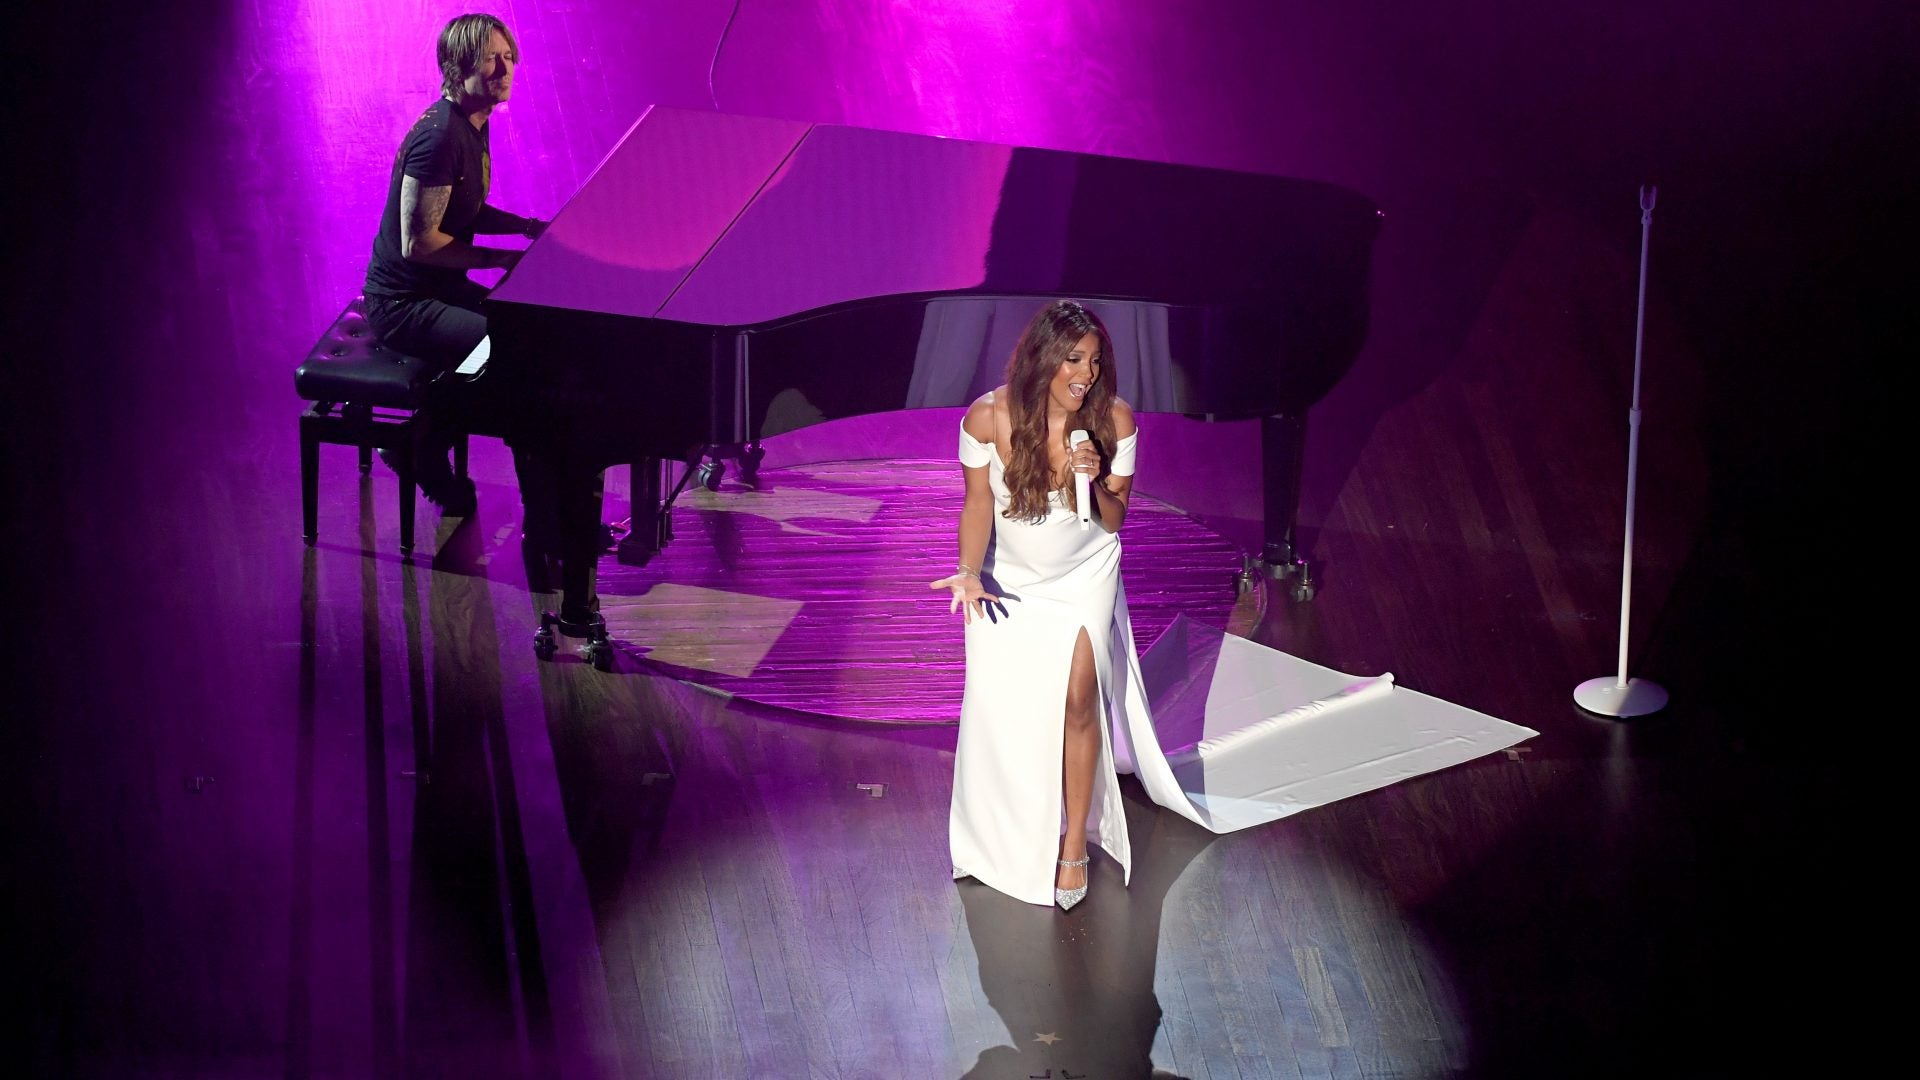 Mickey Guyton Is The First Black Woman To Perform At ACM Awards